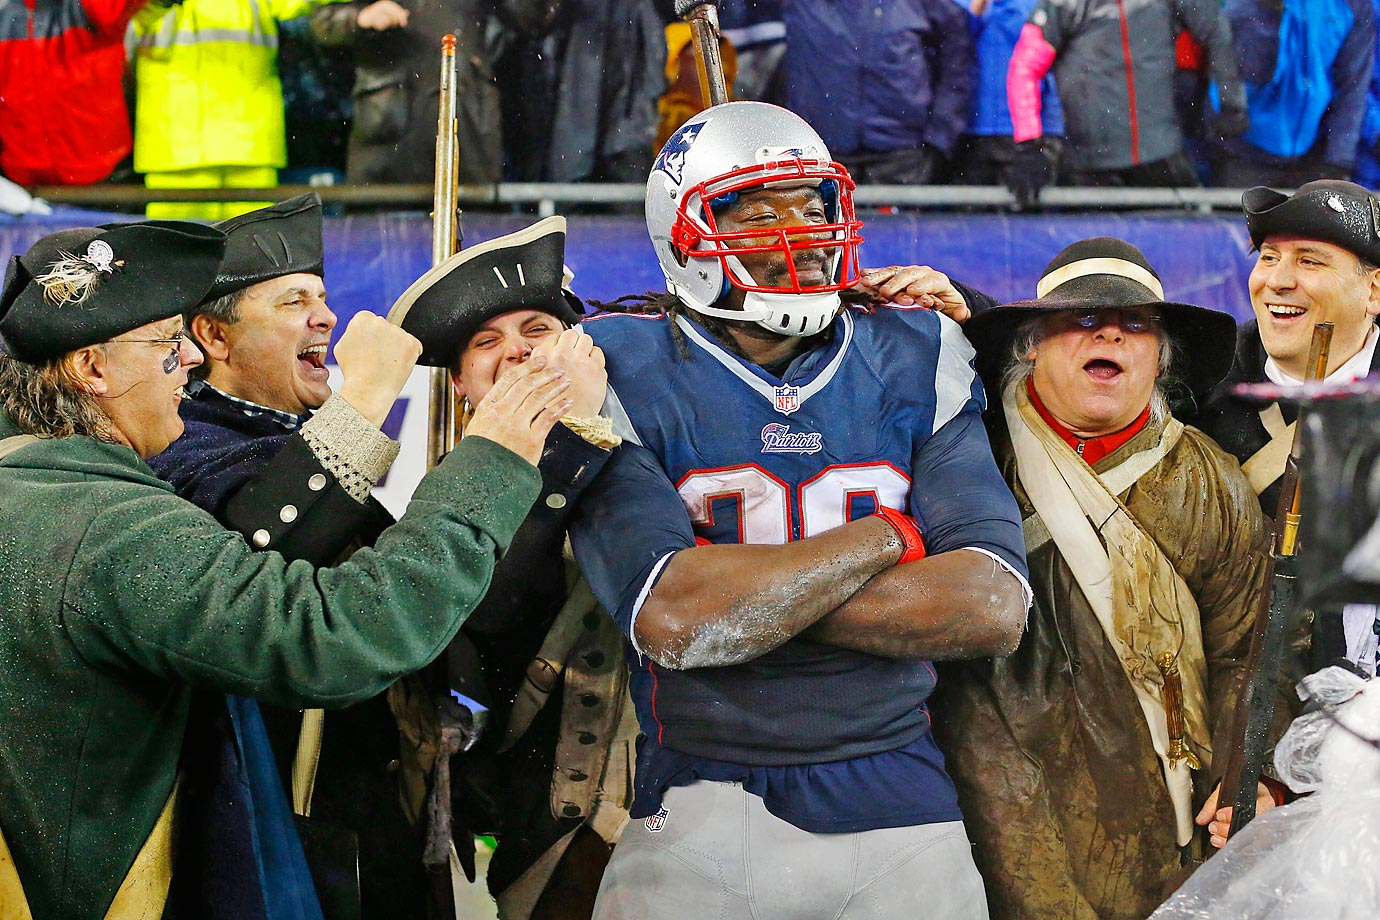 An unusual touchdown celebration by New England Patriots running back LeGarrette Blount.